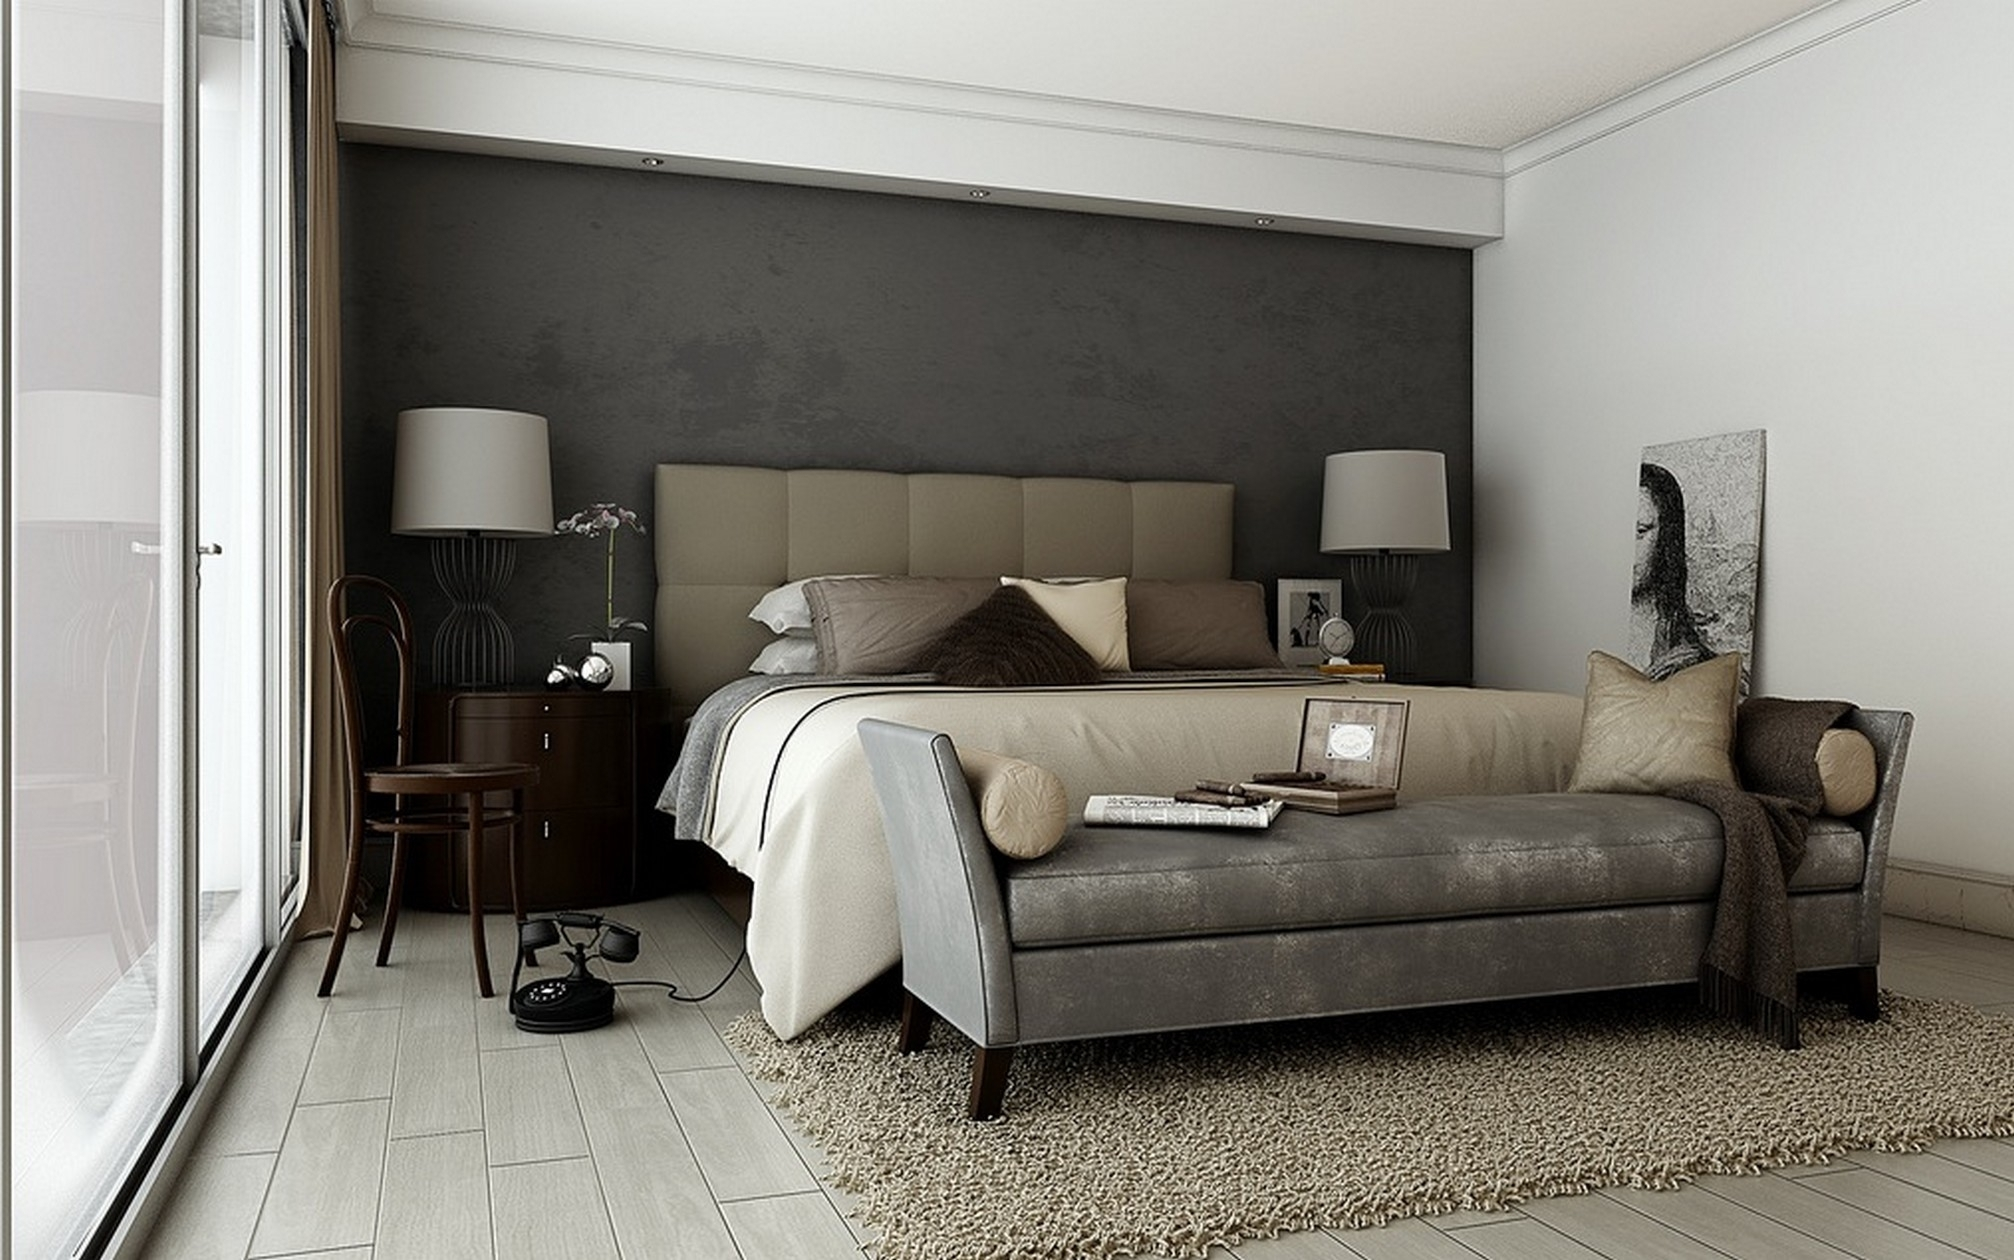 Grey Bedroom Walls With Color Accents | Dzqxh For Recent Wall Accents For Grey Room (View 9 of 15)